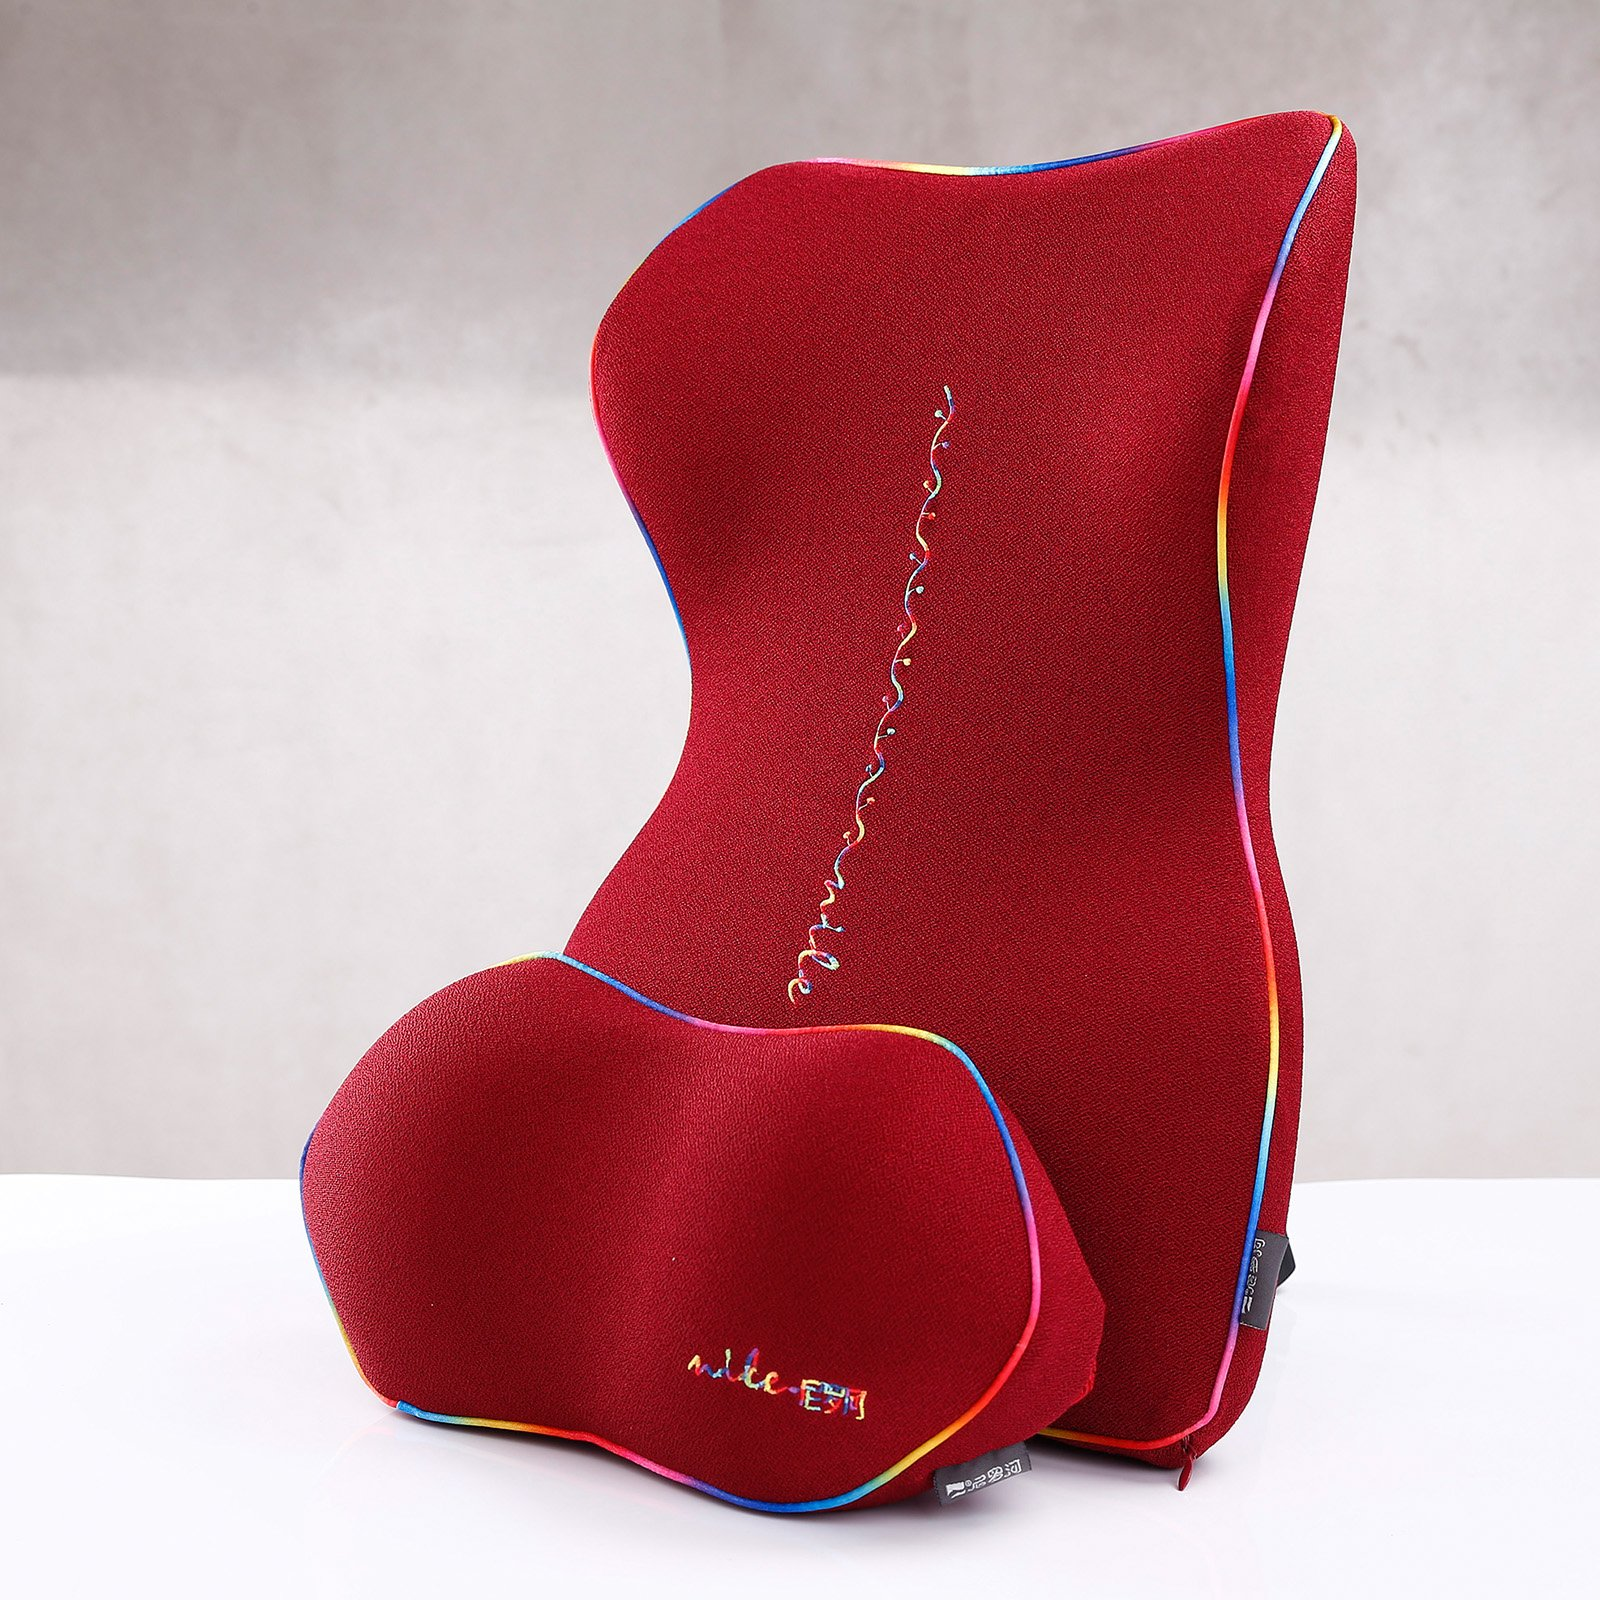 TiTa-Dong Car Seat Waist Pillow Headrest Lumbar Supports Pad for Driving Fatigue SUV Travel Relieve Back Neck size M (Red)